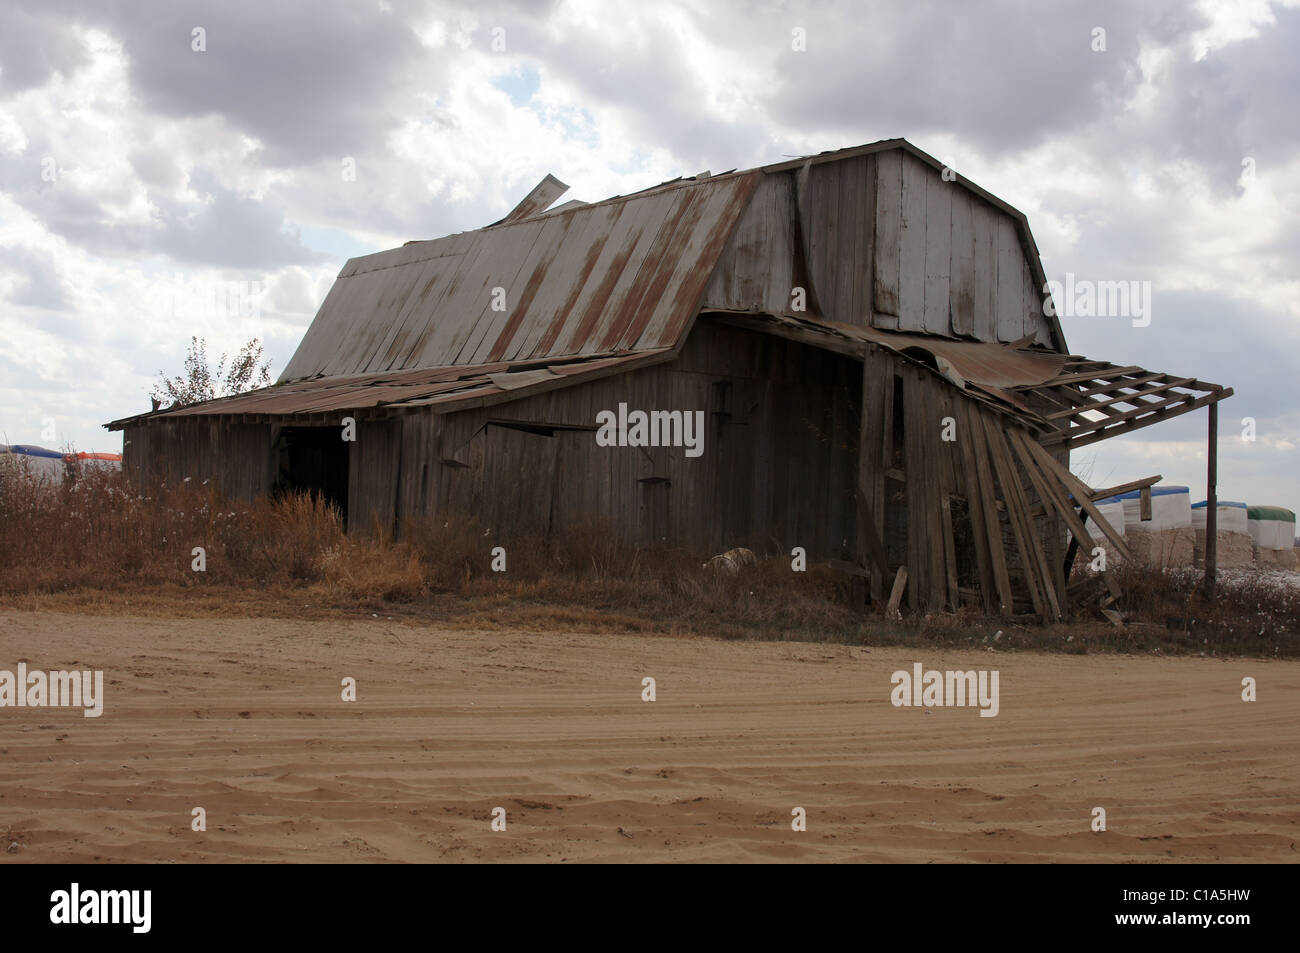 An old barn needing repair with sandy foreground and cotton modules waiting to be ginned in the background - Stock Image